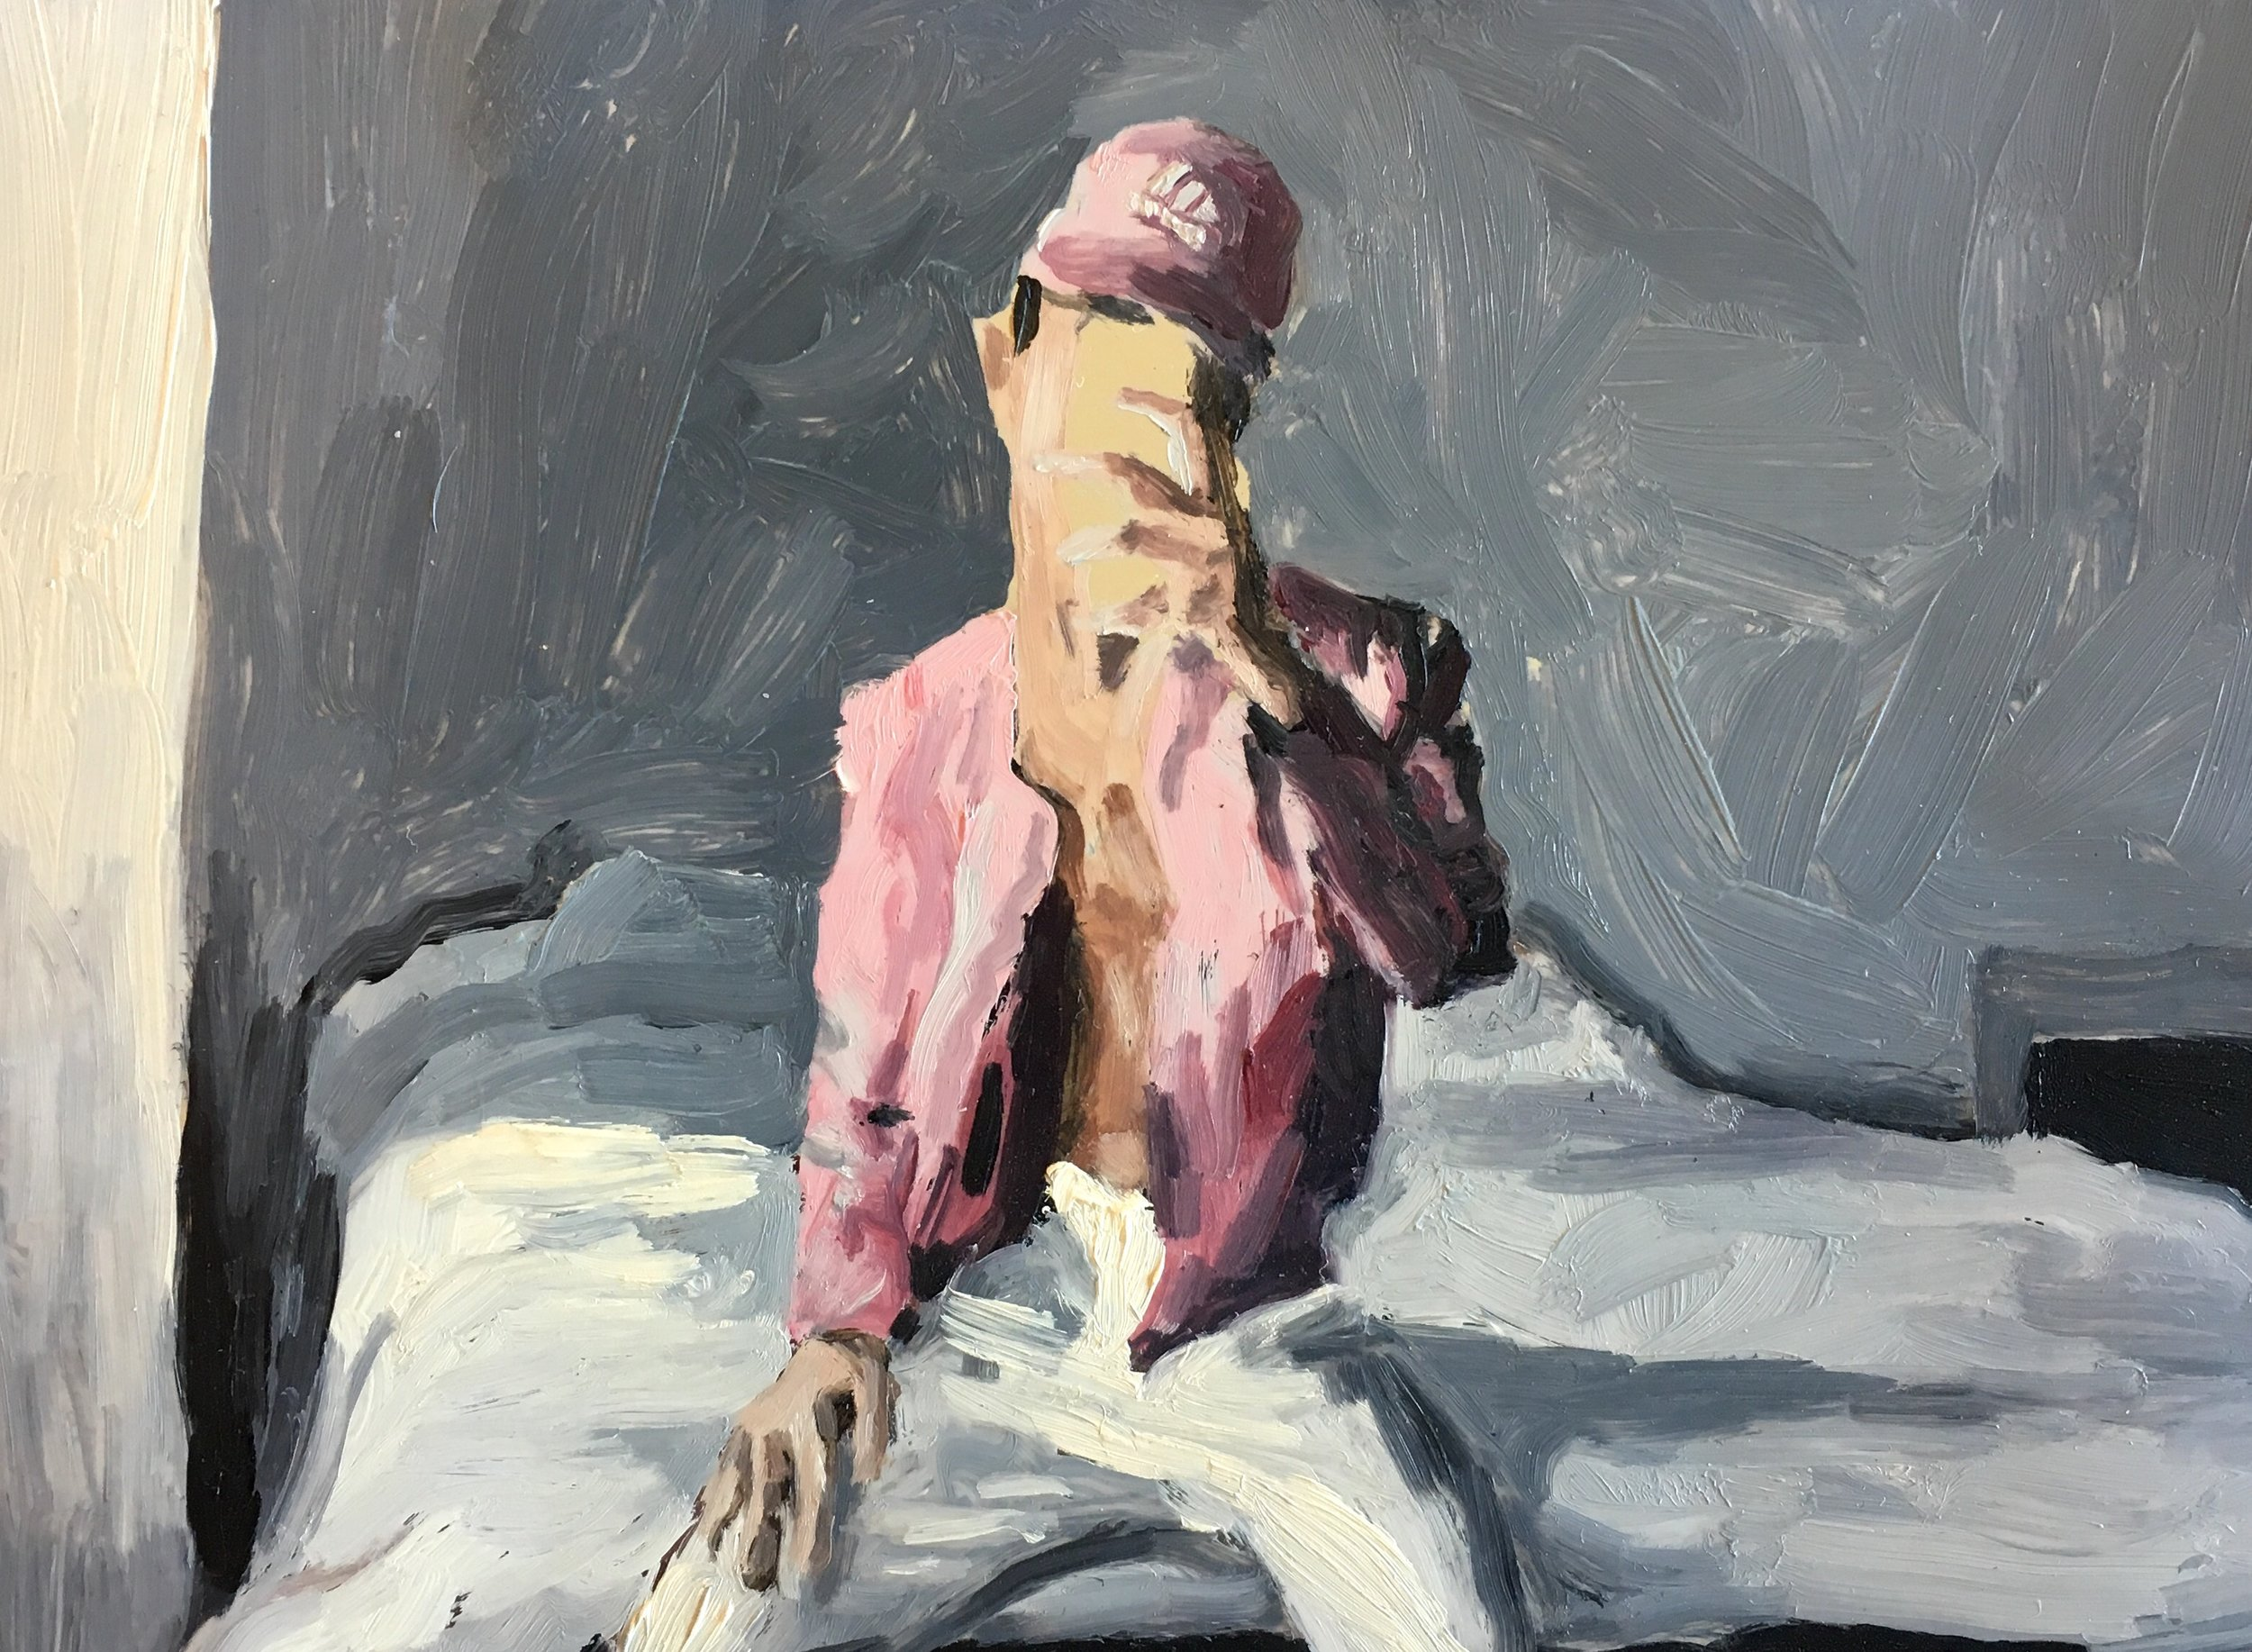 """Diogo In Pink"" by Adam Chuck, 5x7in, oil on mylar"